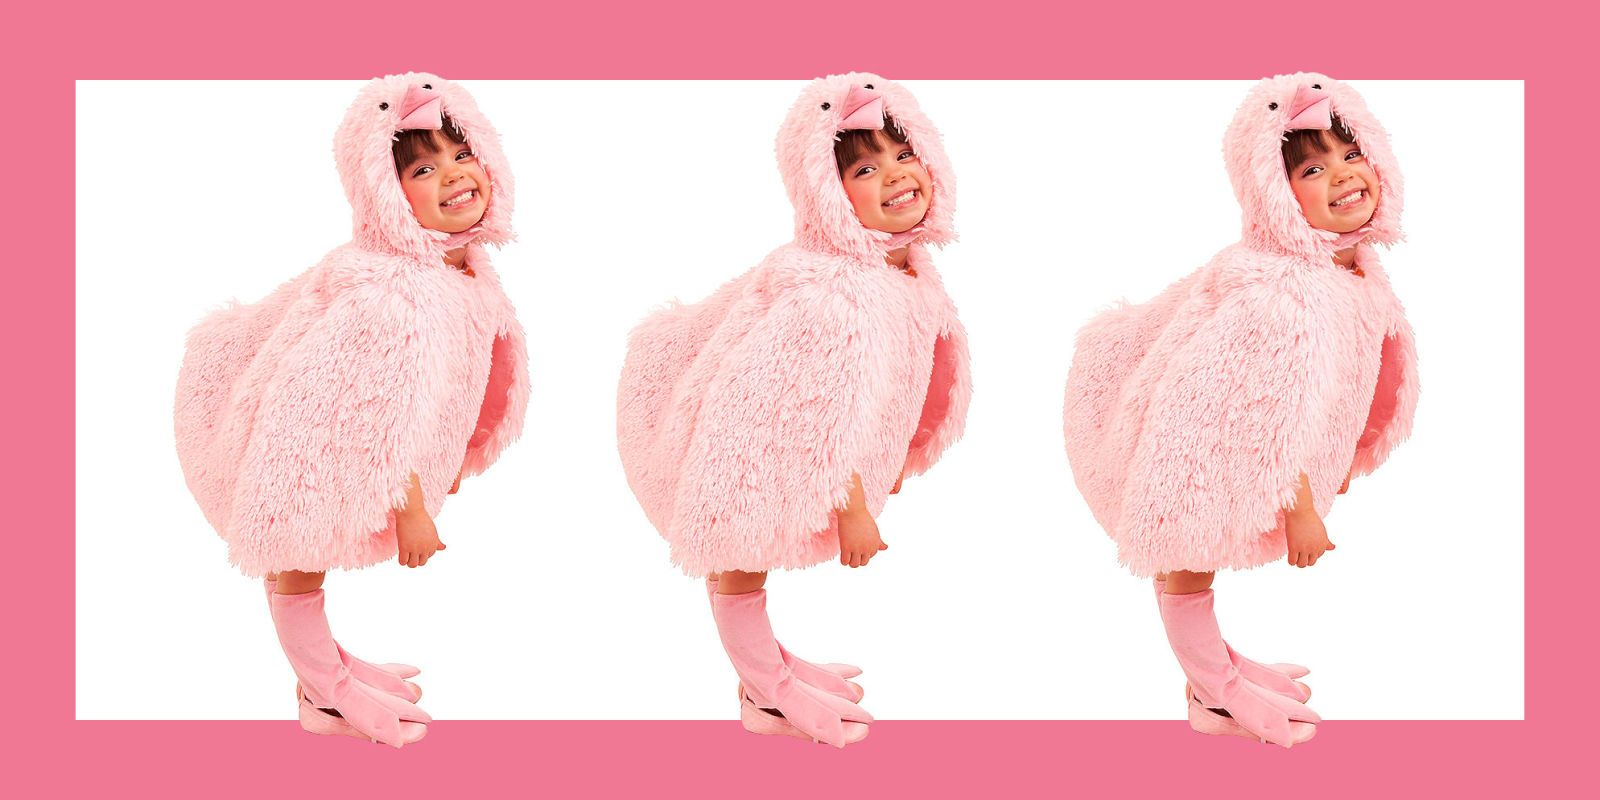 toddler-halloween-costumes  sc 1 st  BestProducts.com & 16 Best Toddler Halloween Costumes in 2018 - Cute Halloween Costumes ...